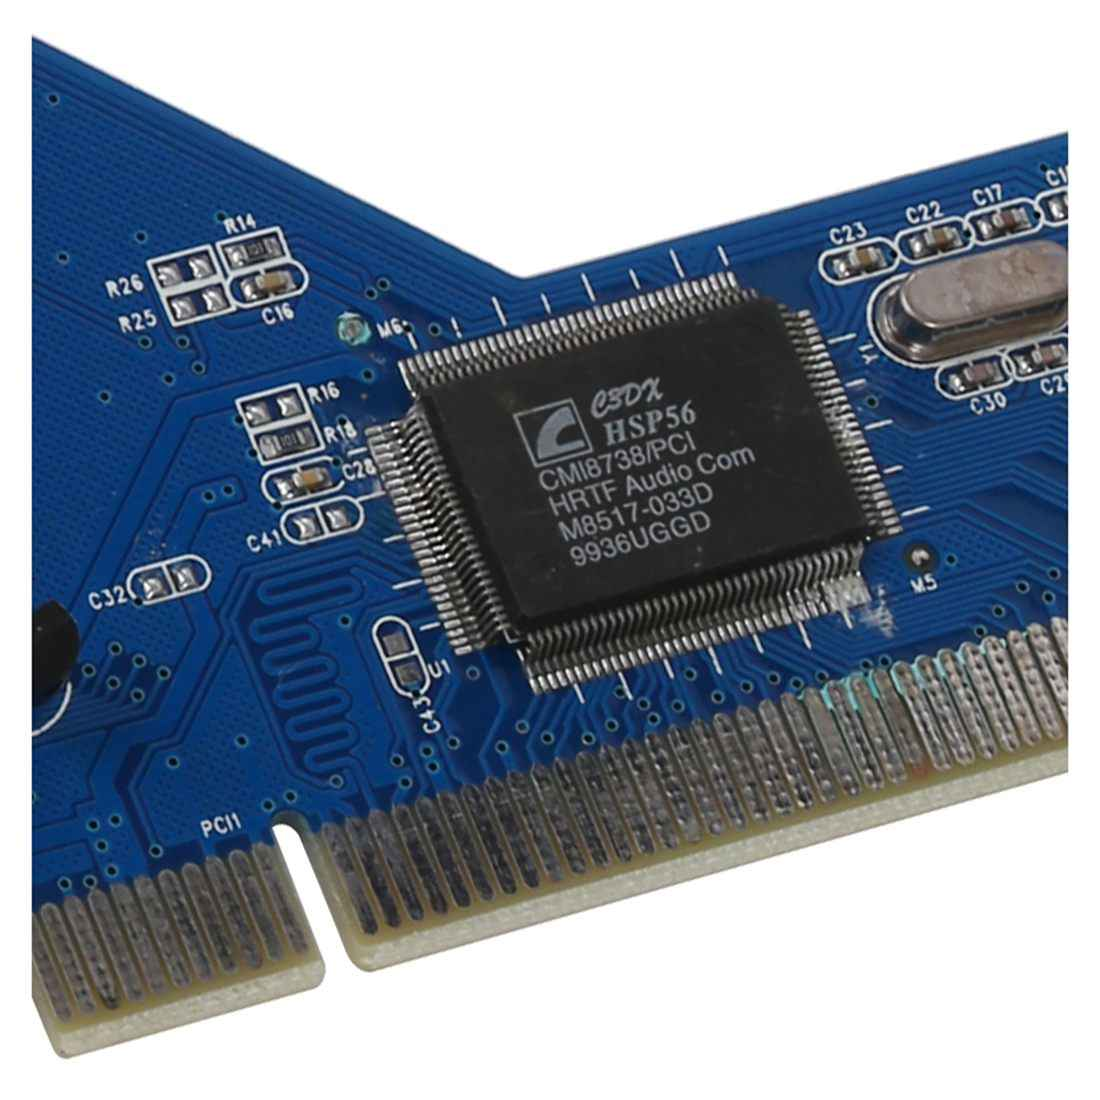 C-MEDIA 8738 PCI CARD SOUND WINDOWS 8 DRIVERS DOWNLOAD